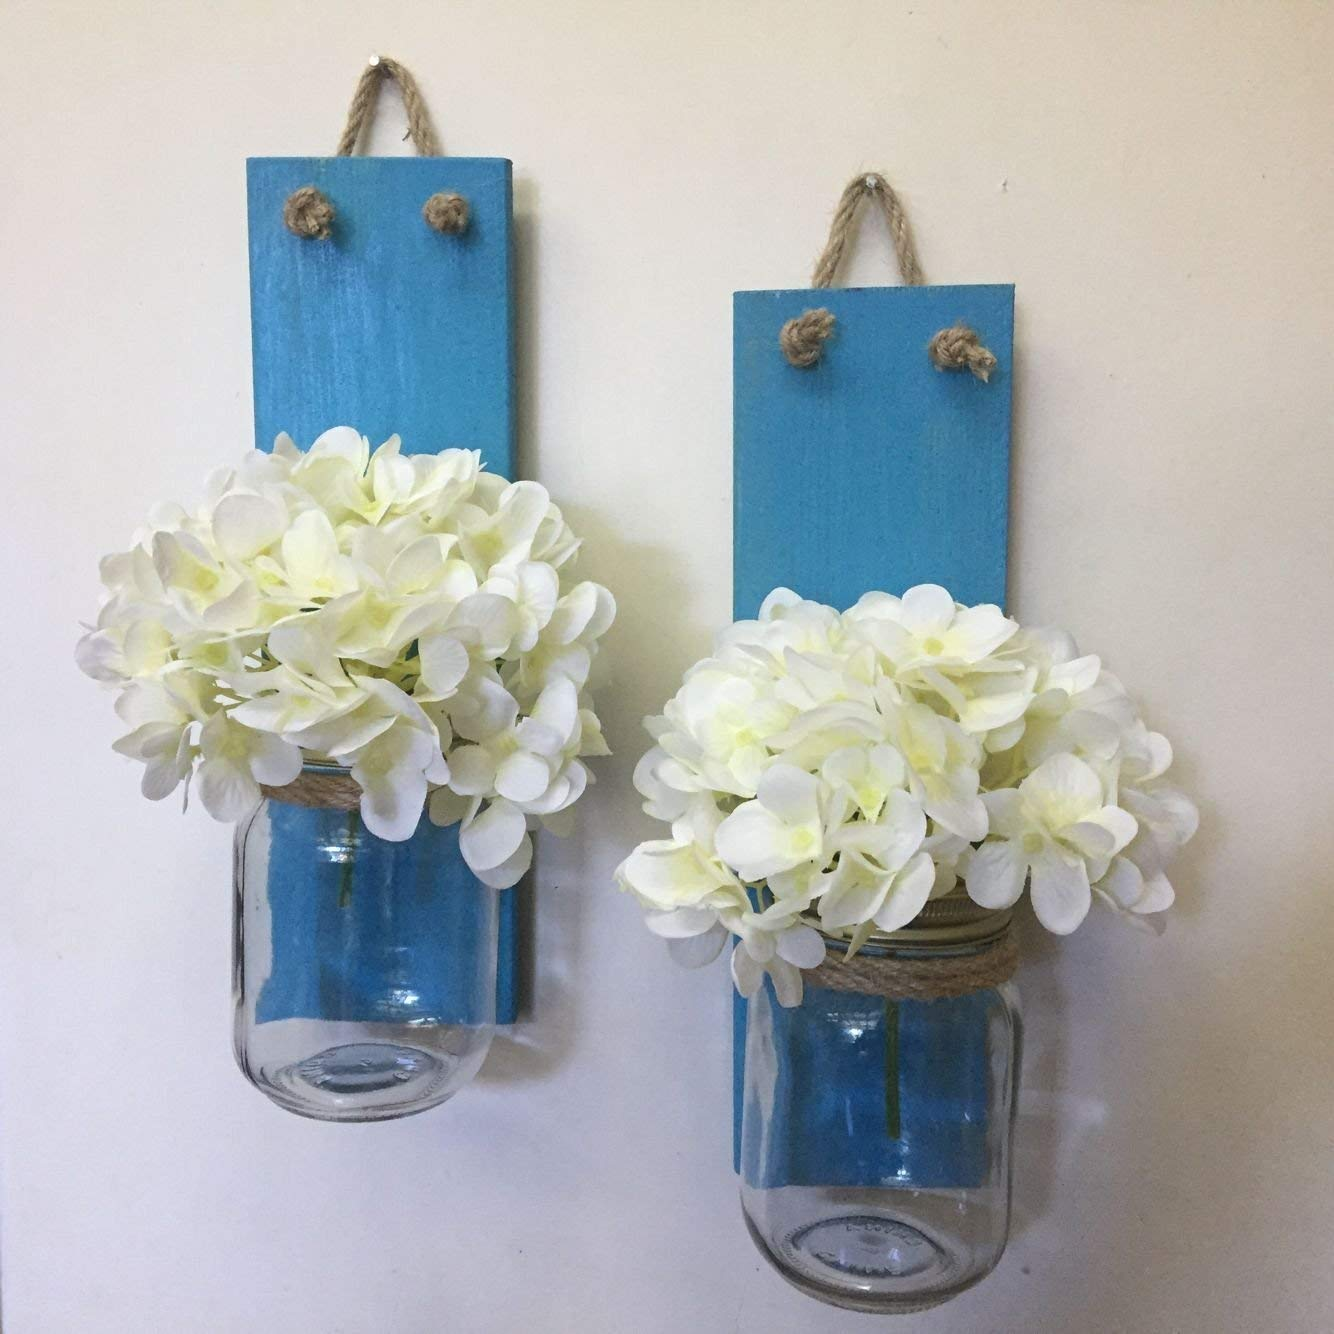 Blue Wood Wall Sconce, Rustic Wall Sconce Wood Candle Holders, Mason Jar Candle Sconce Set of 2 Mason Jar Sconces, Rustic Home Decor